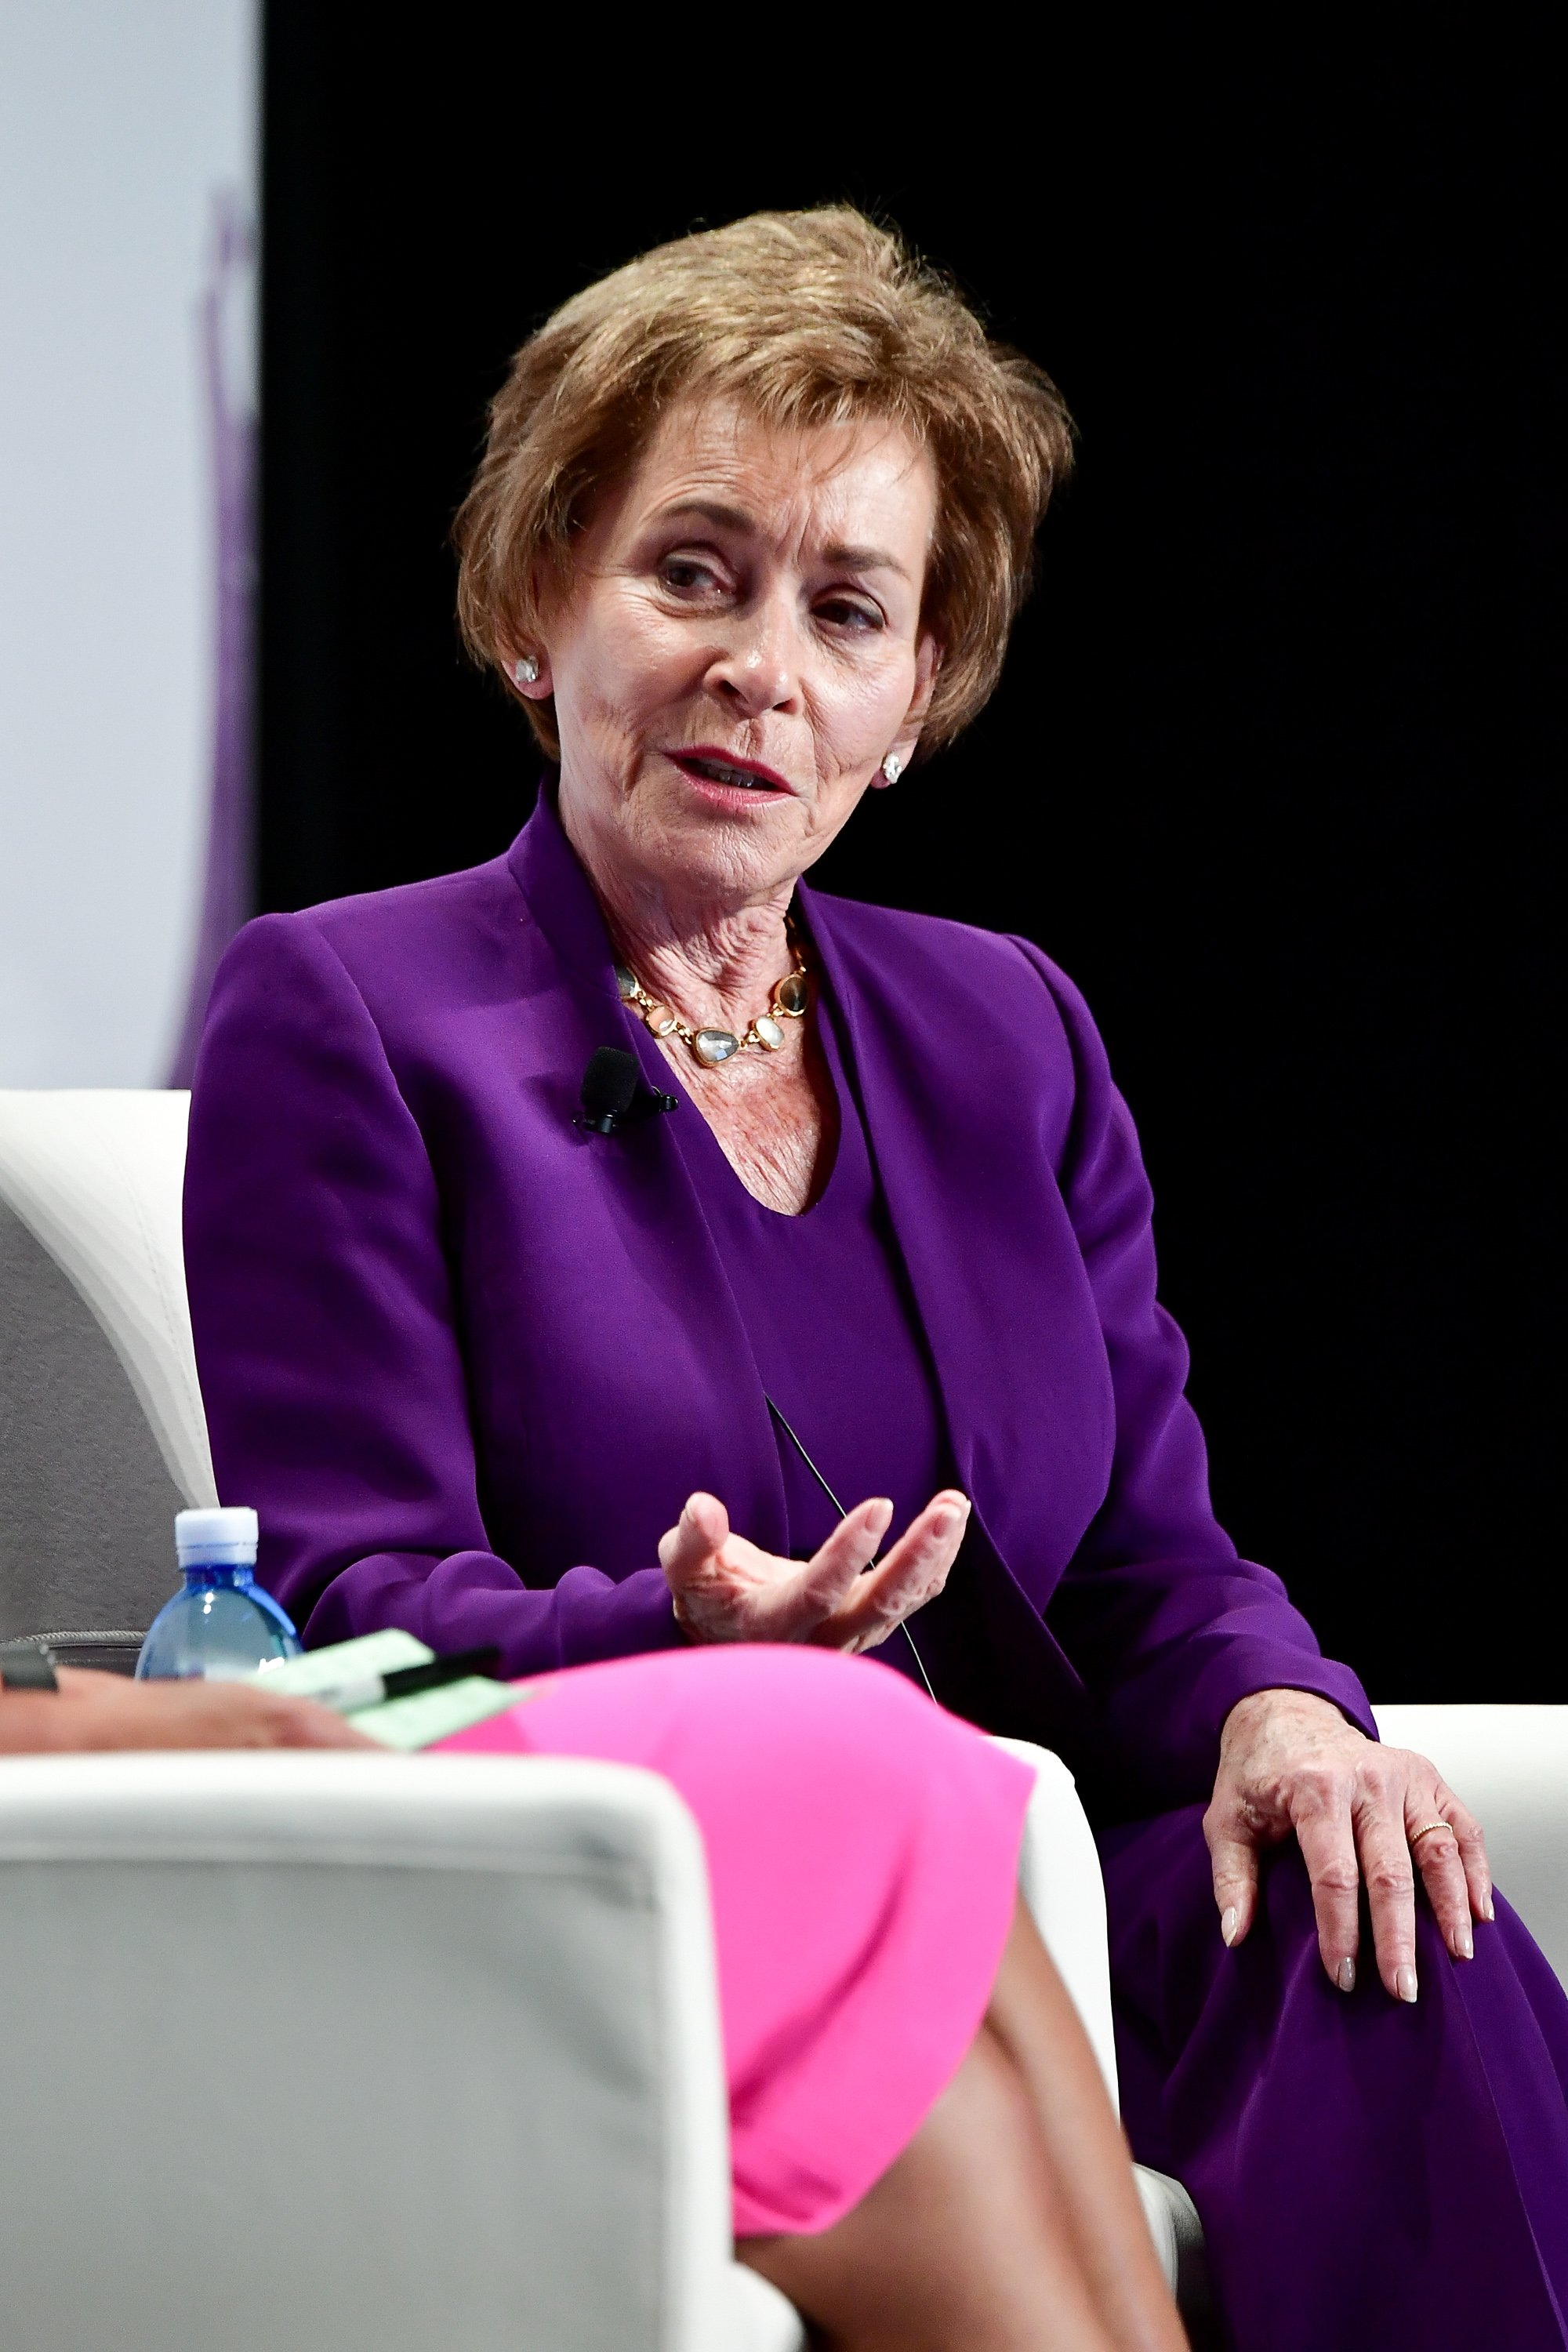 Judge Judy Sheindline attends the Forbes Women's Summit in New York City on June 13, 2017 | Photo: Getty Images